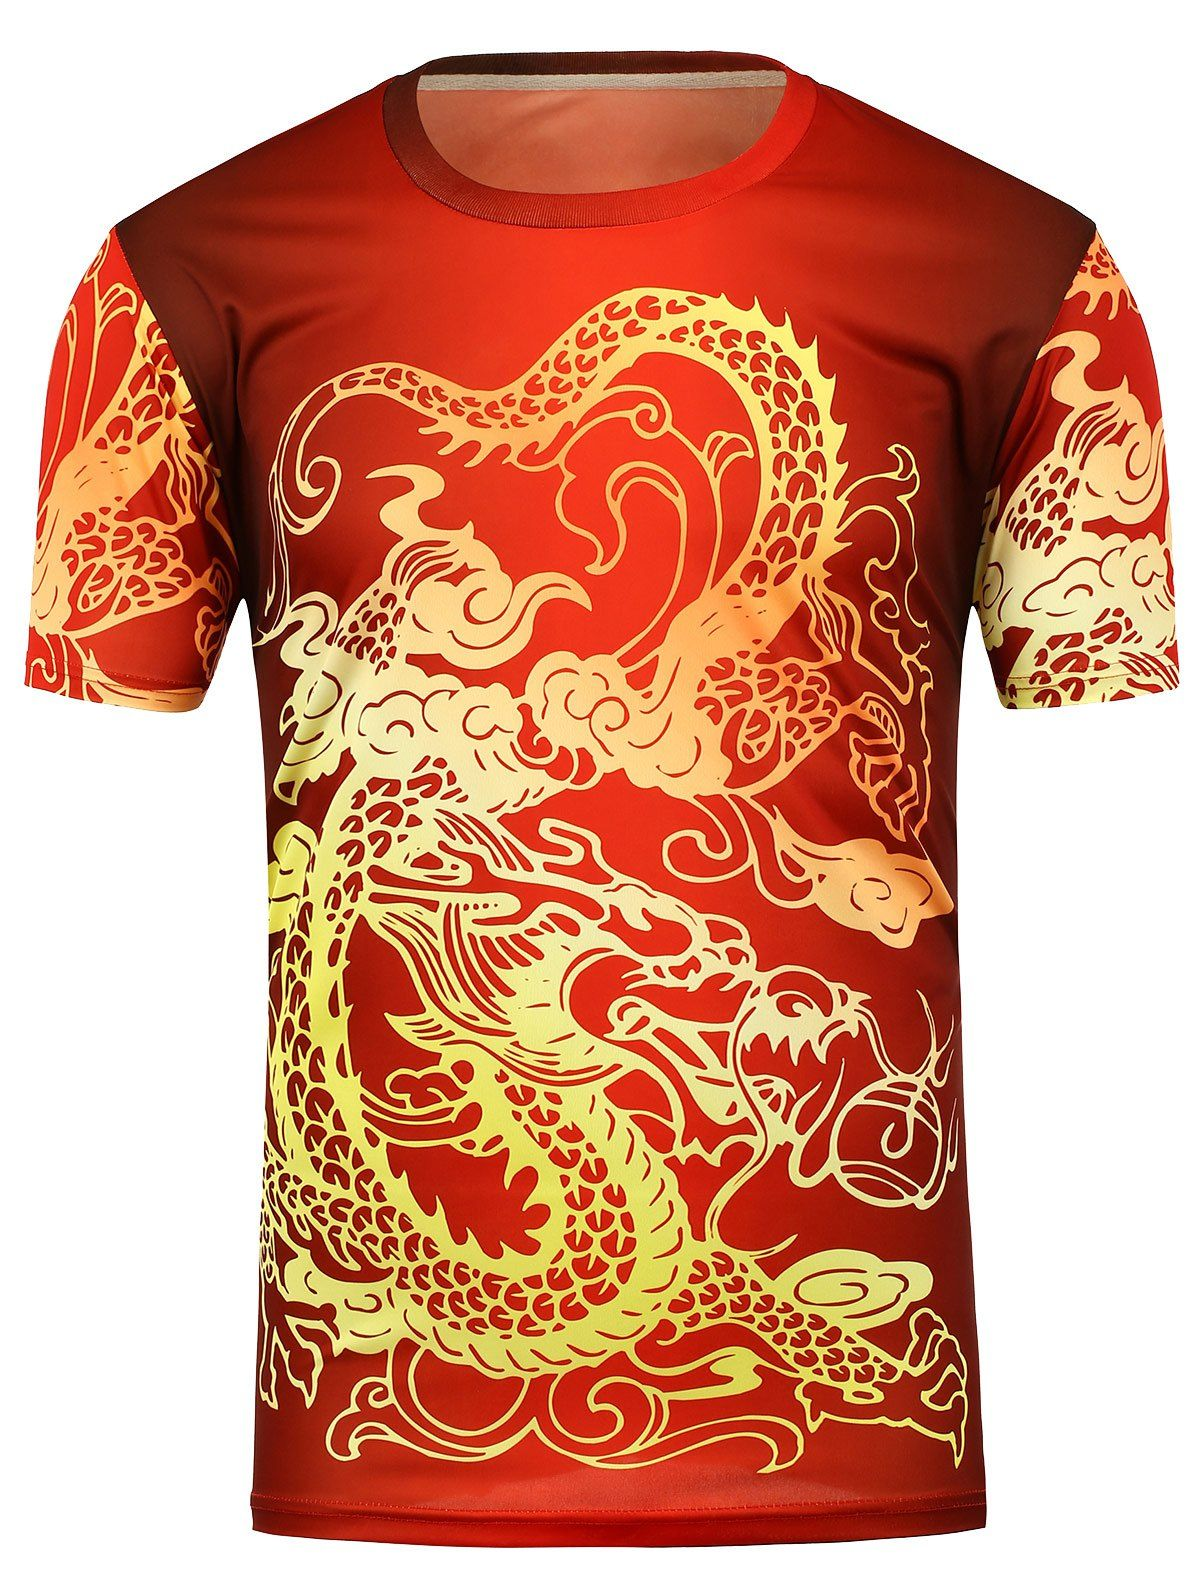 8c614631b2d Dragon Print Short Sleeve T-Shirt